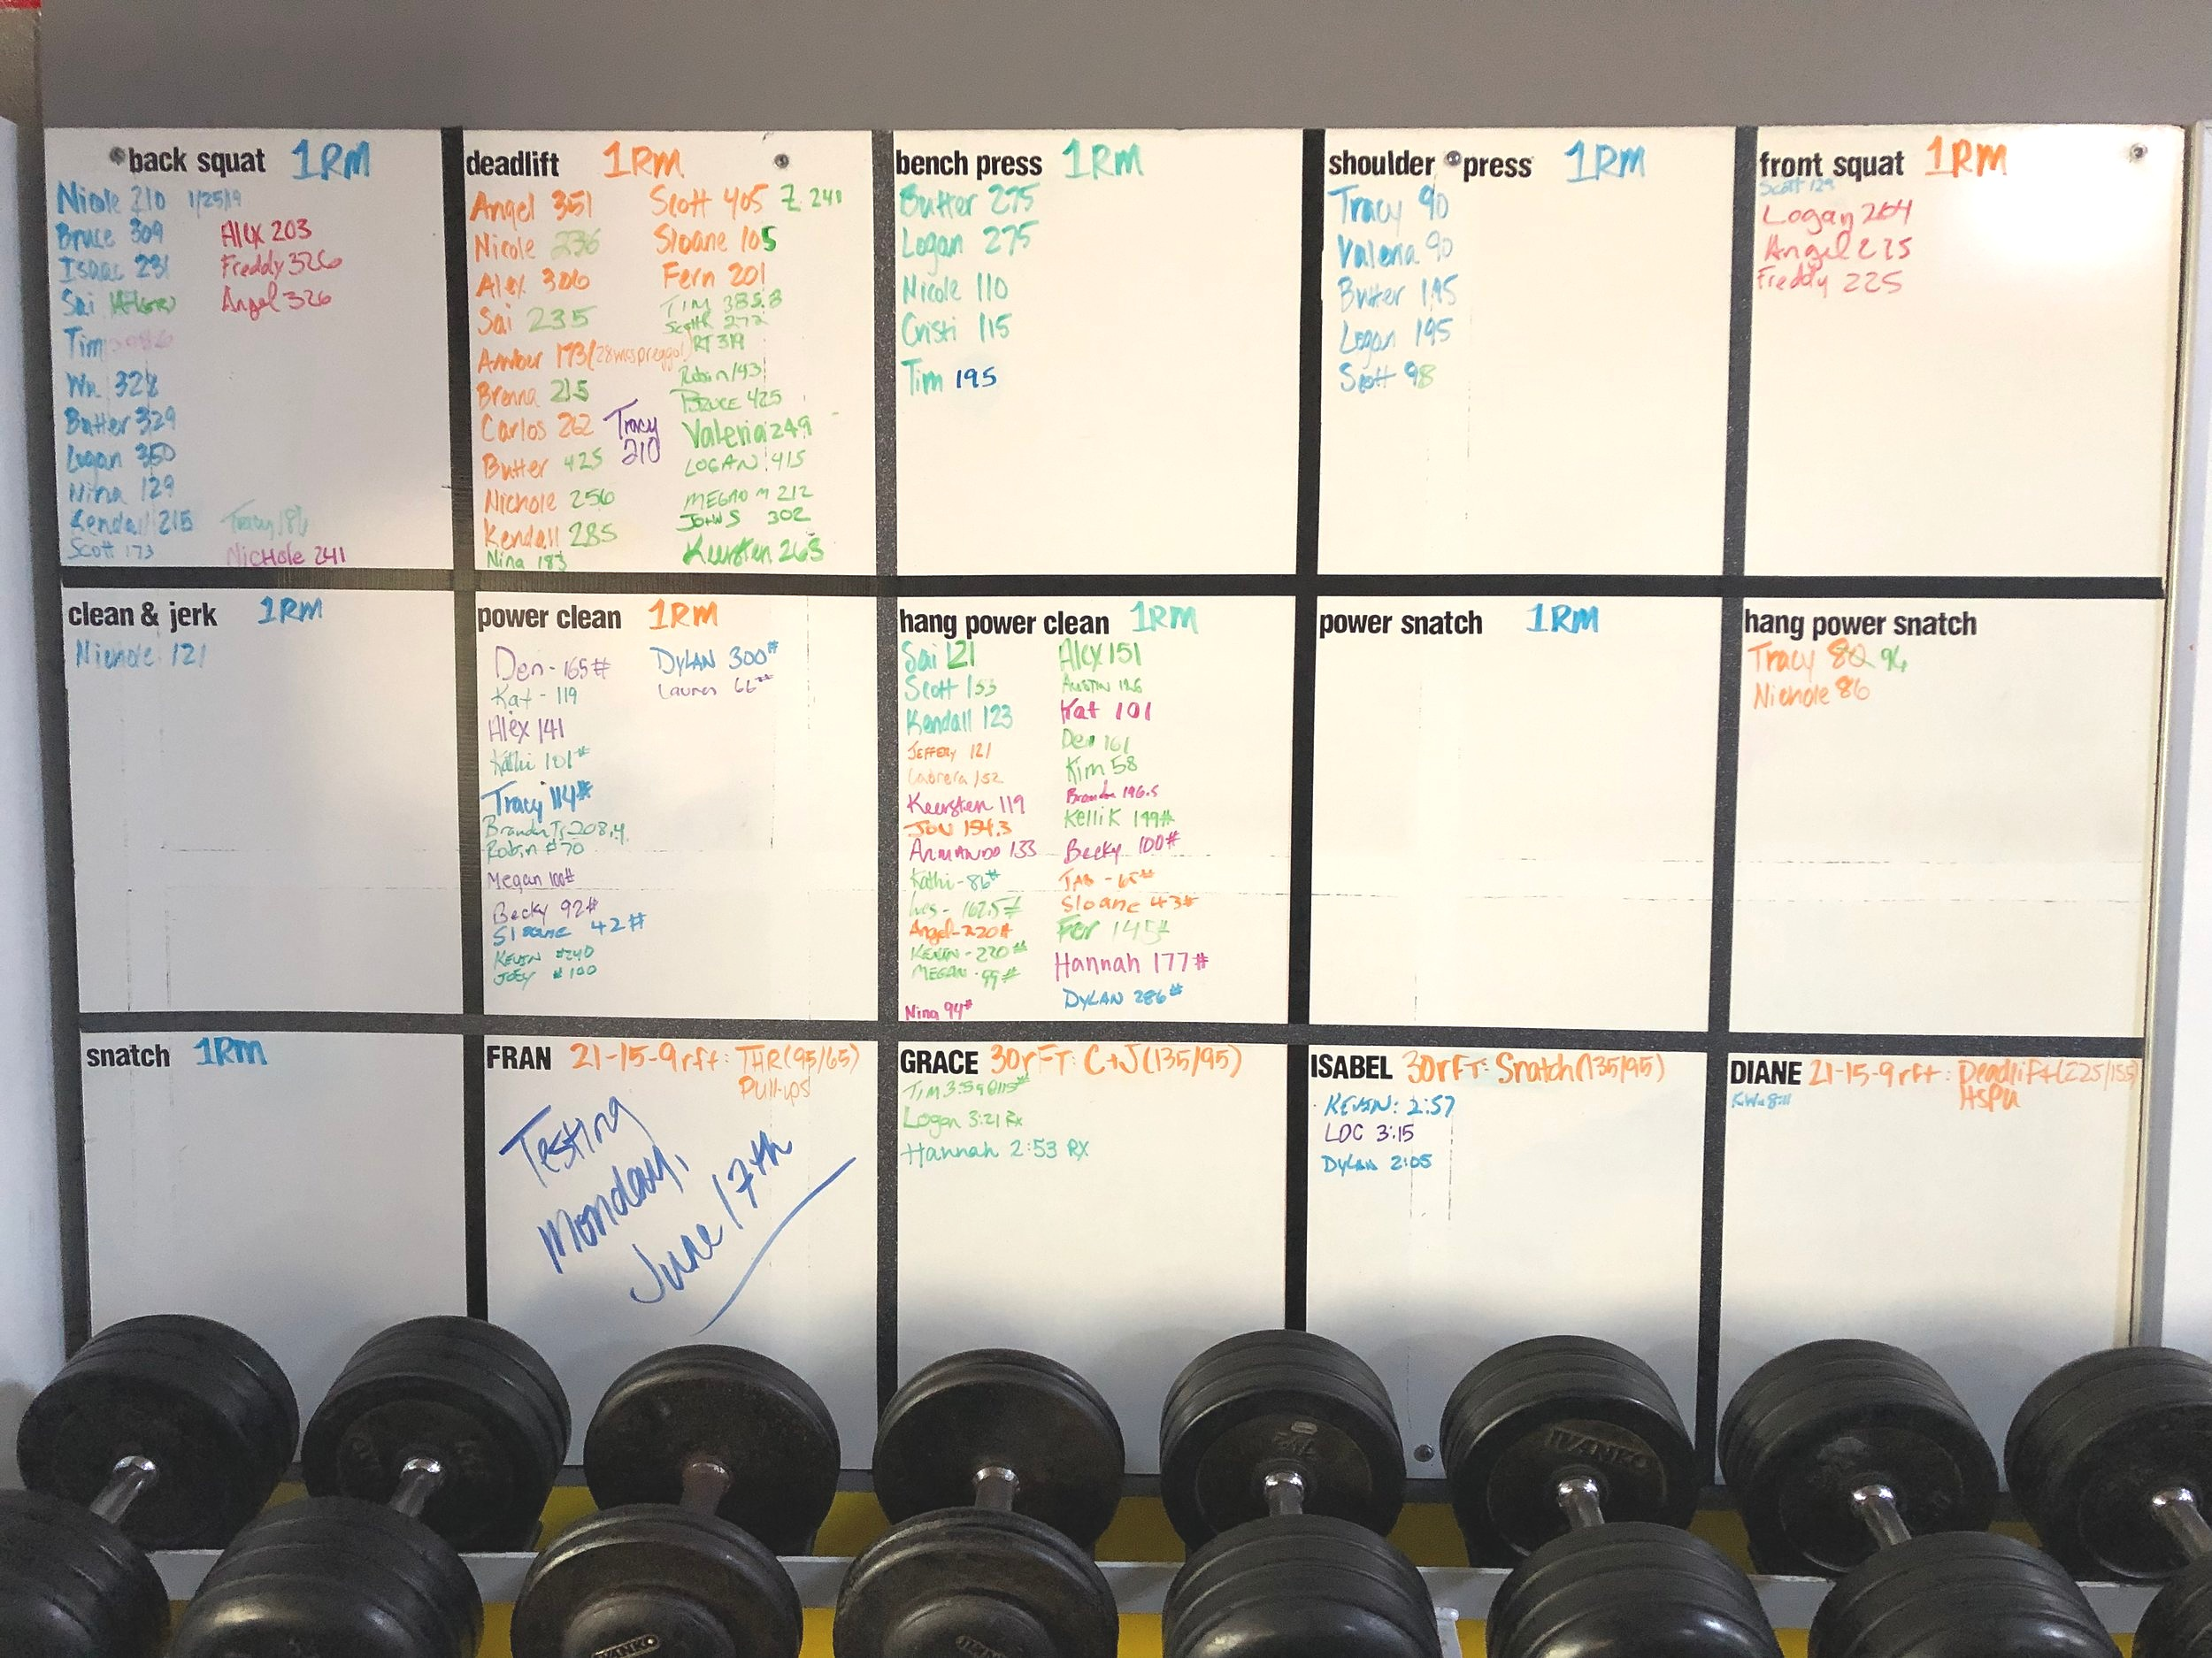 PR Board at CrossFit Frederick